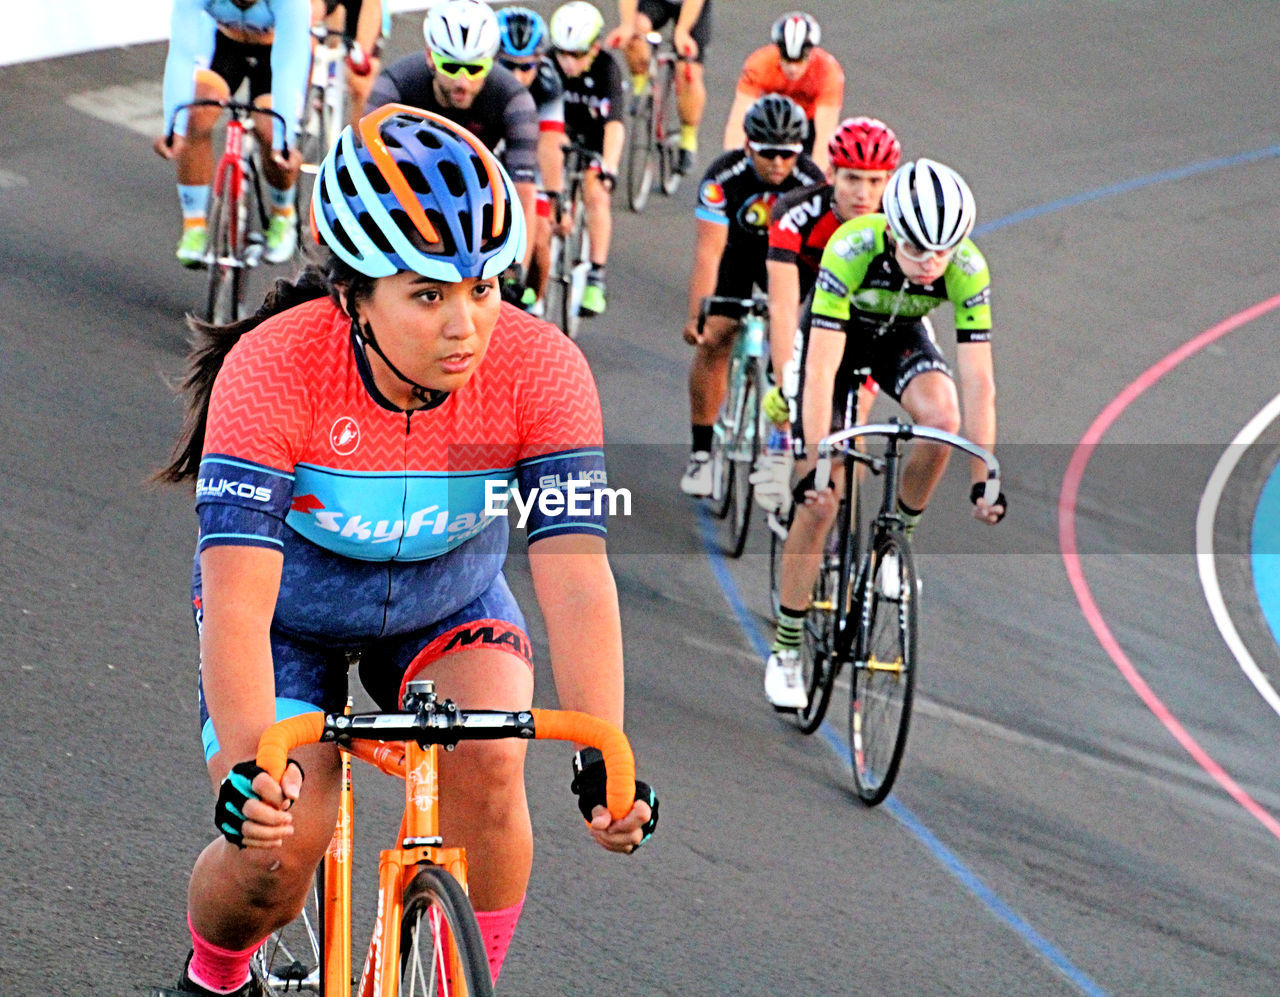 bicycle, competition, sports race, cycling, sport, racing bicycle, sports clothing, sports track, exercising, men, riding, competitive sport, headwear, outdoors, athlete, track and field event, sports event, endurance, healthy lifestyle, adult, sportsman, track and field athlete, day, cycling helmet, adults only, triathlon, people